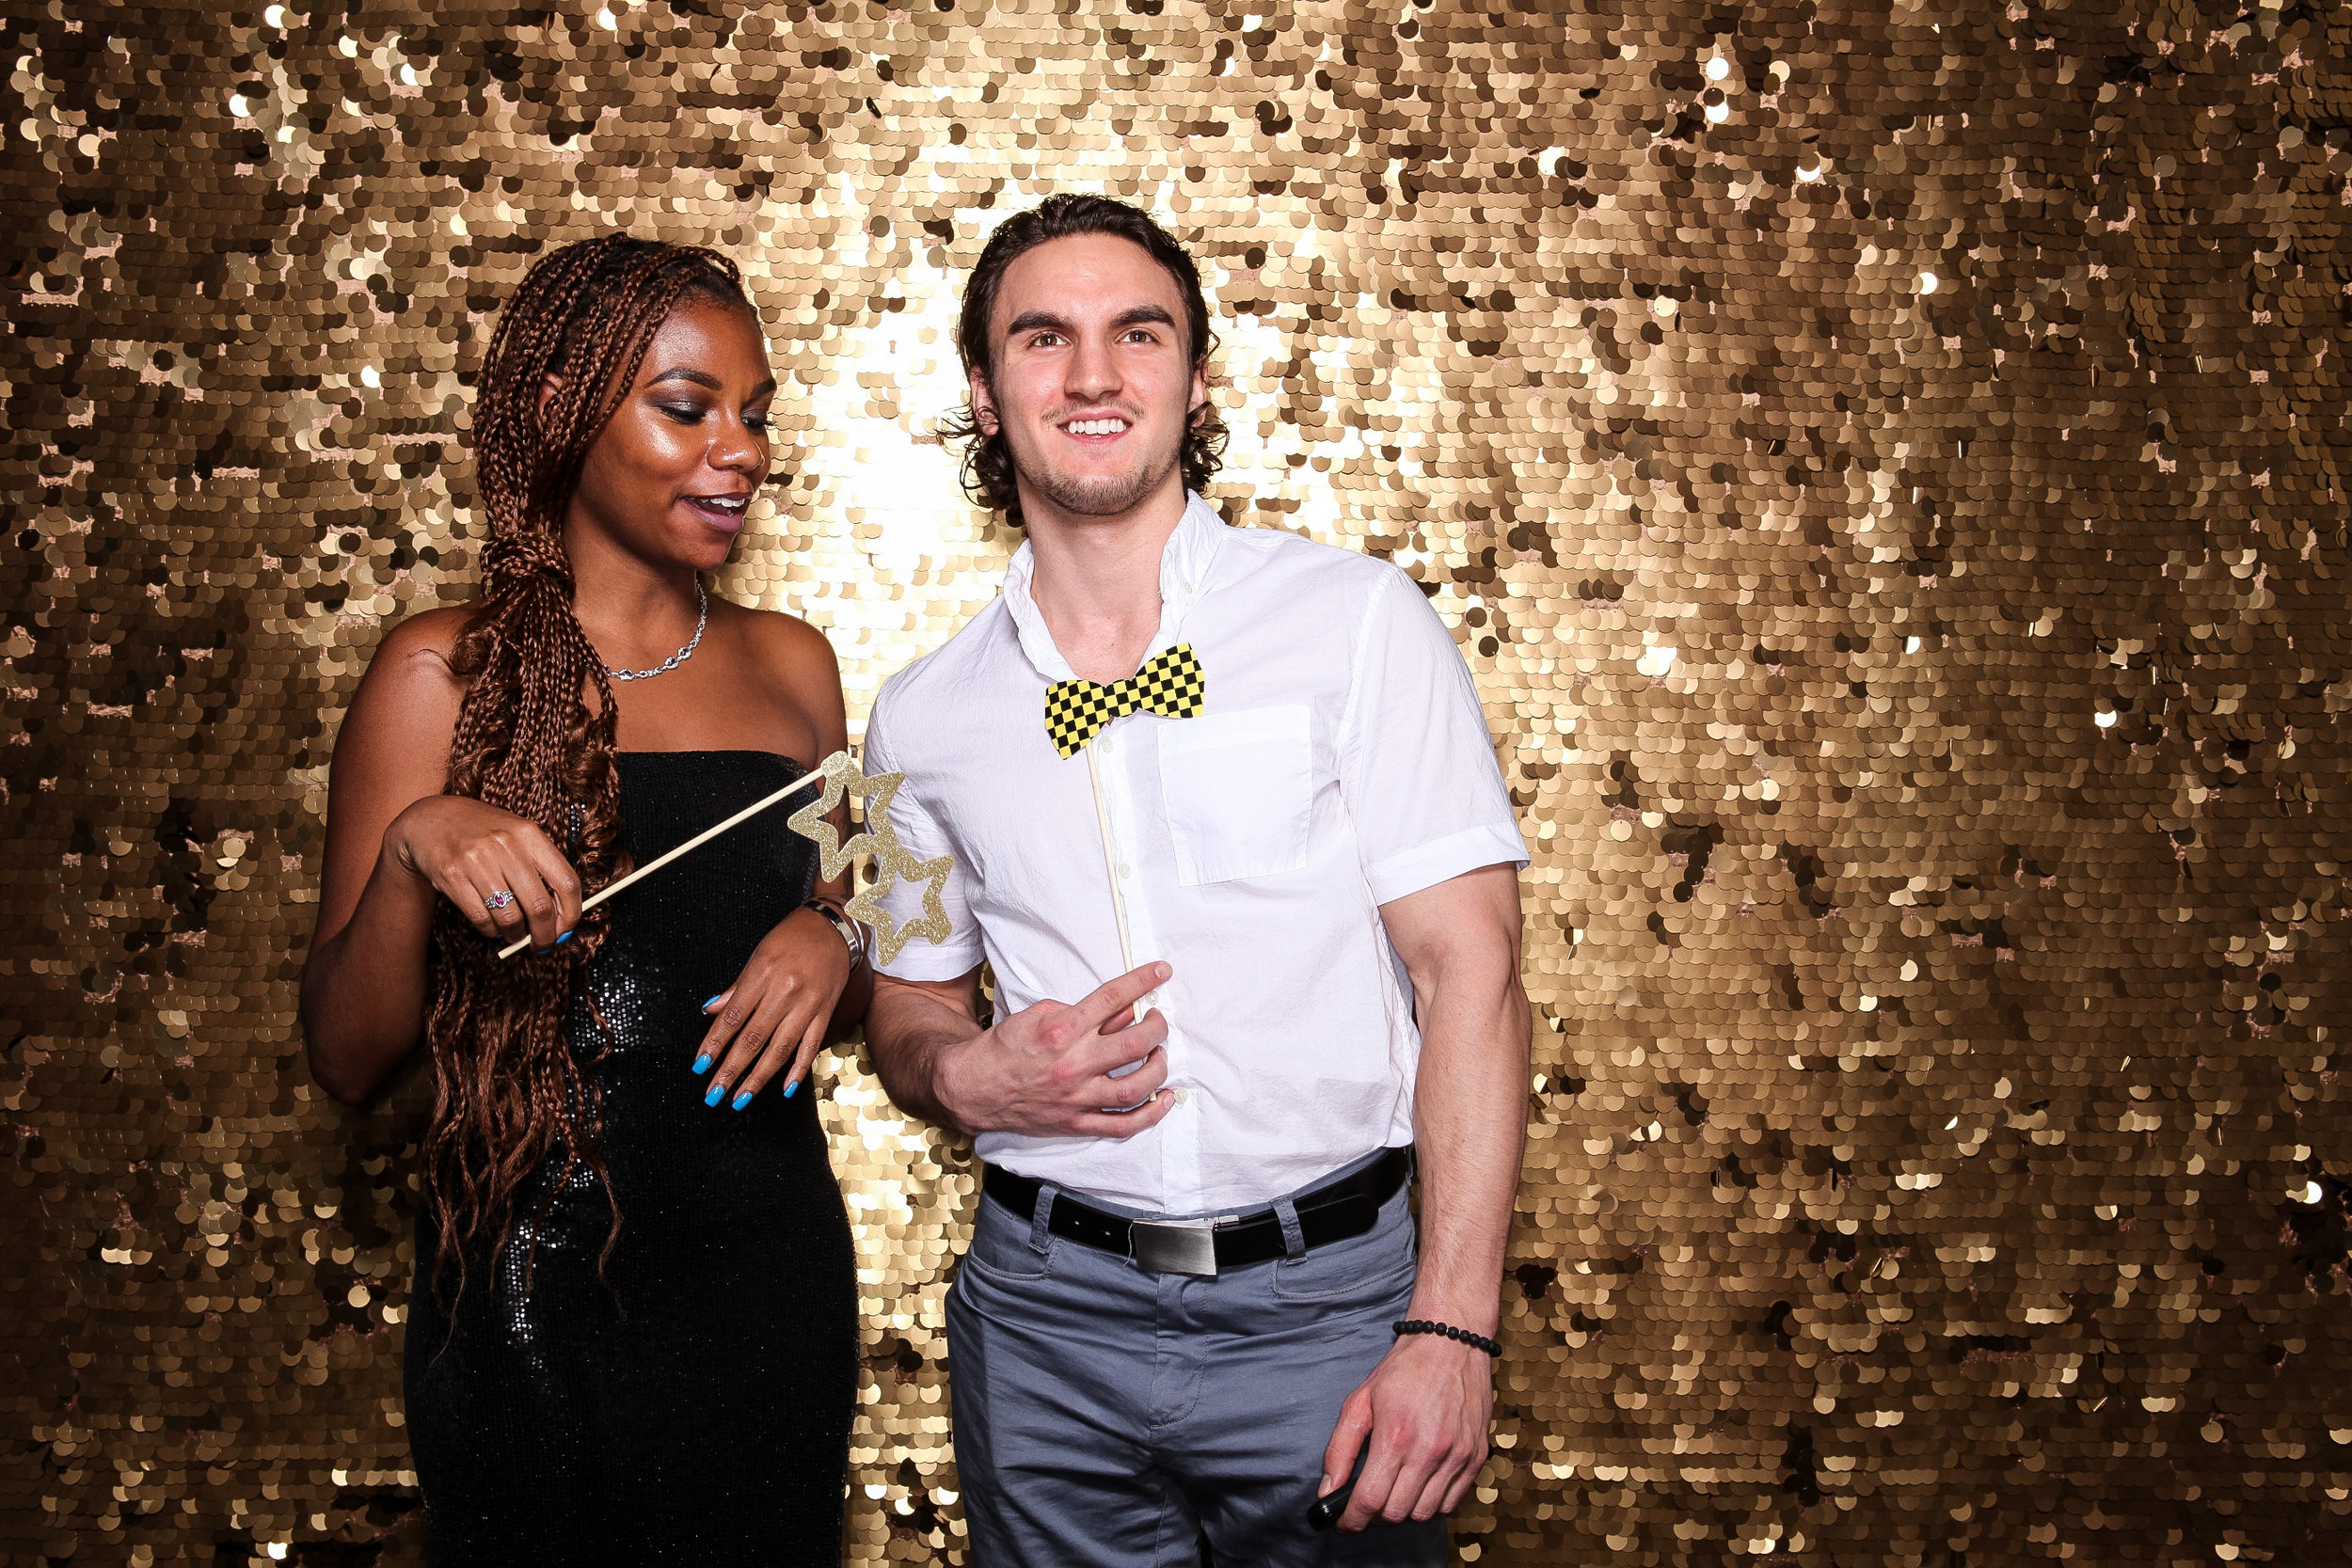 20190503_Adelphi_Senior_Formal-101.jpg